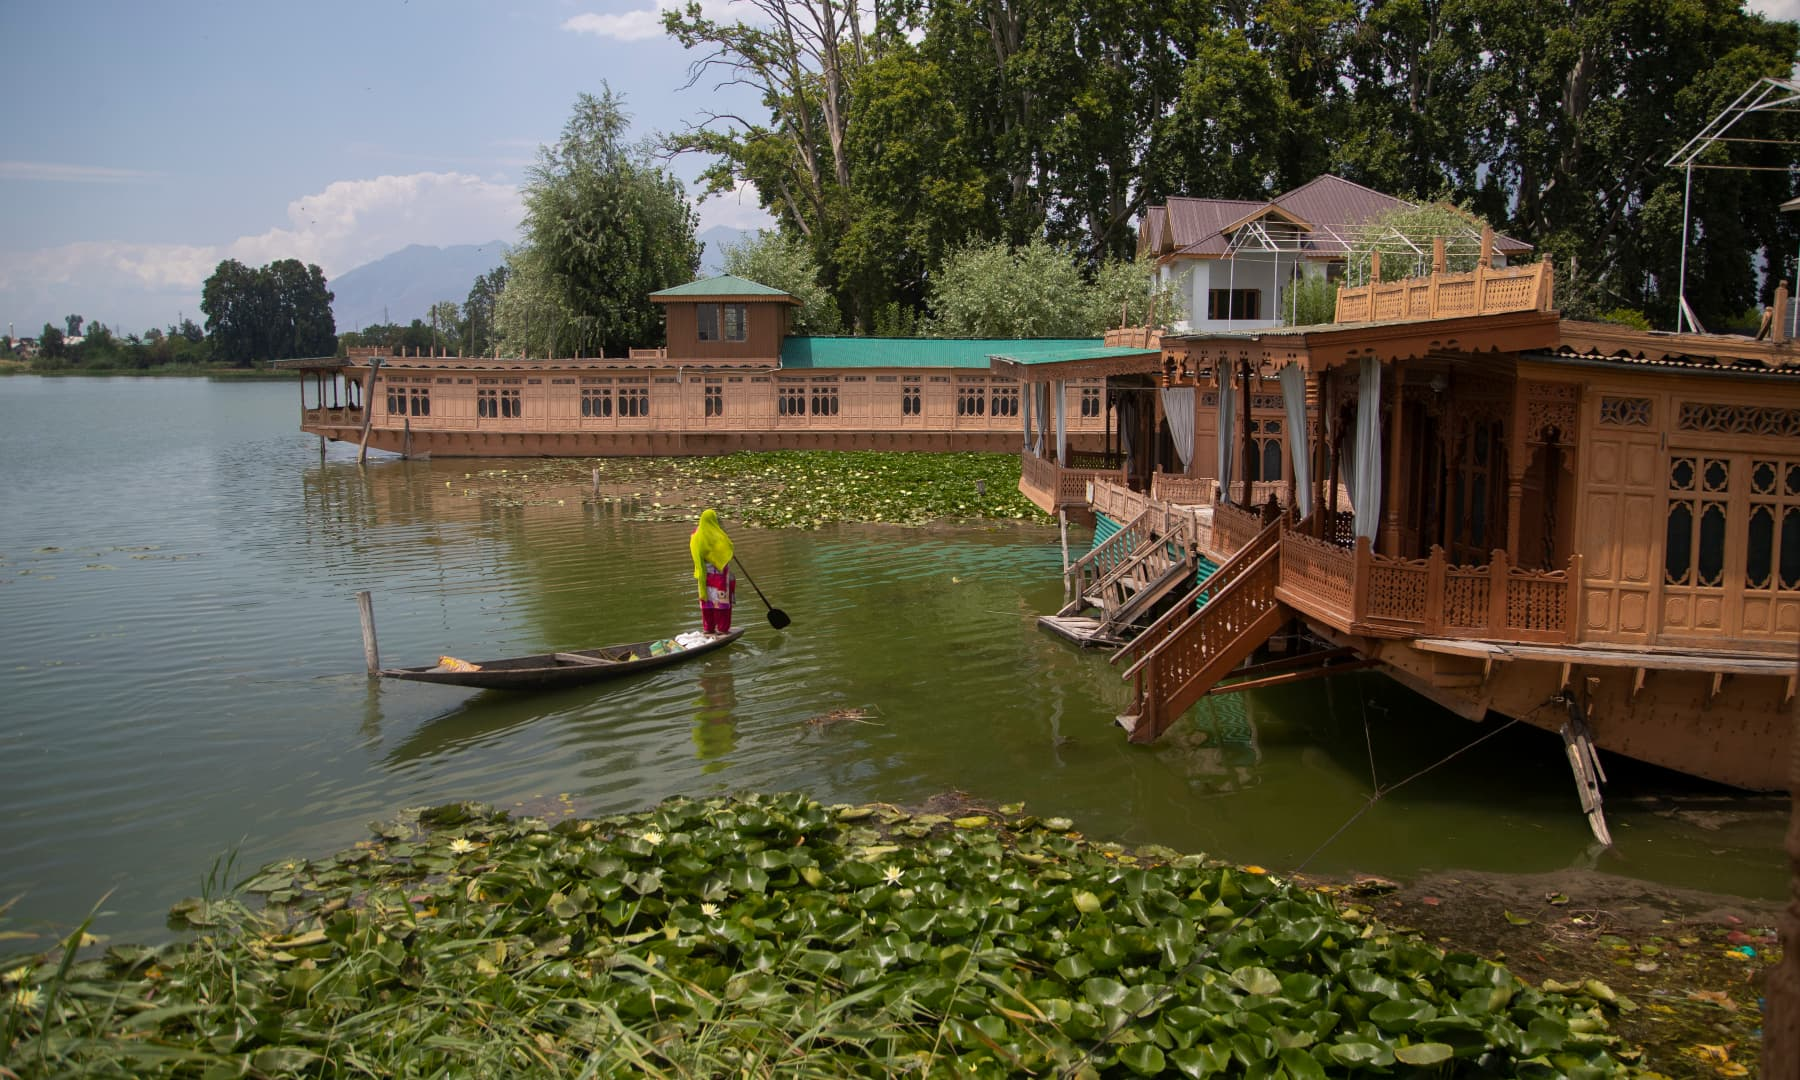 A Kashmiri woman rows her boat near unoccupied houseboats at Nigeen Lake in Srinagar, July 16. — AP